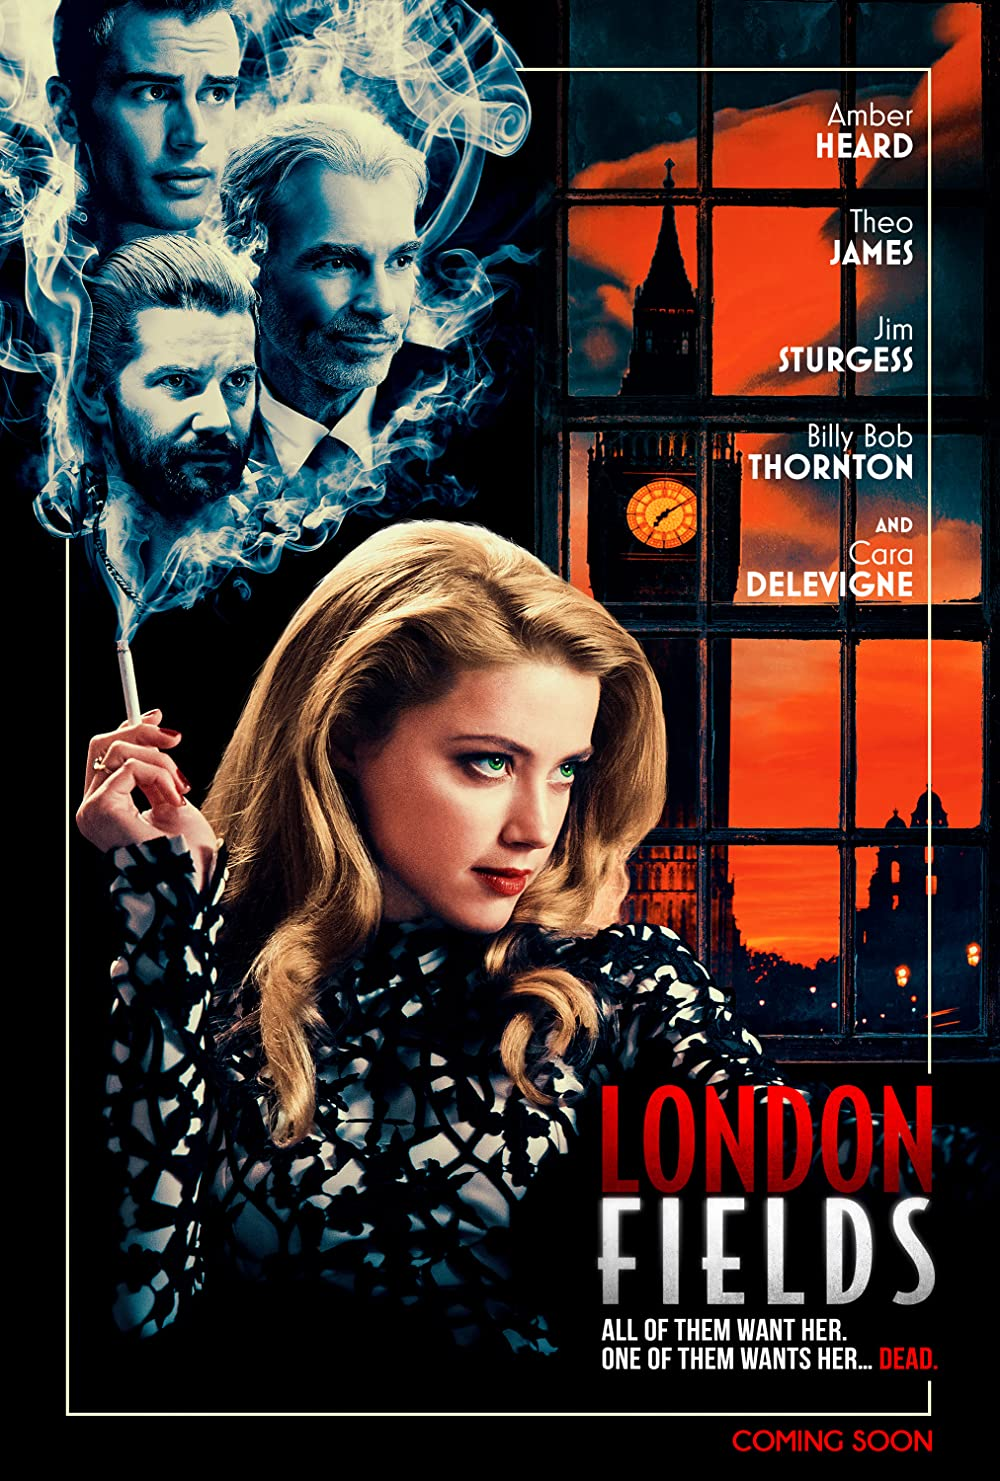 18+ London Fields 2018 Hindi ORG Dual Audio 720p BluRay ESubs 1030MB Download